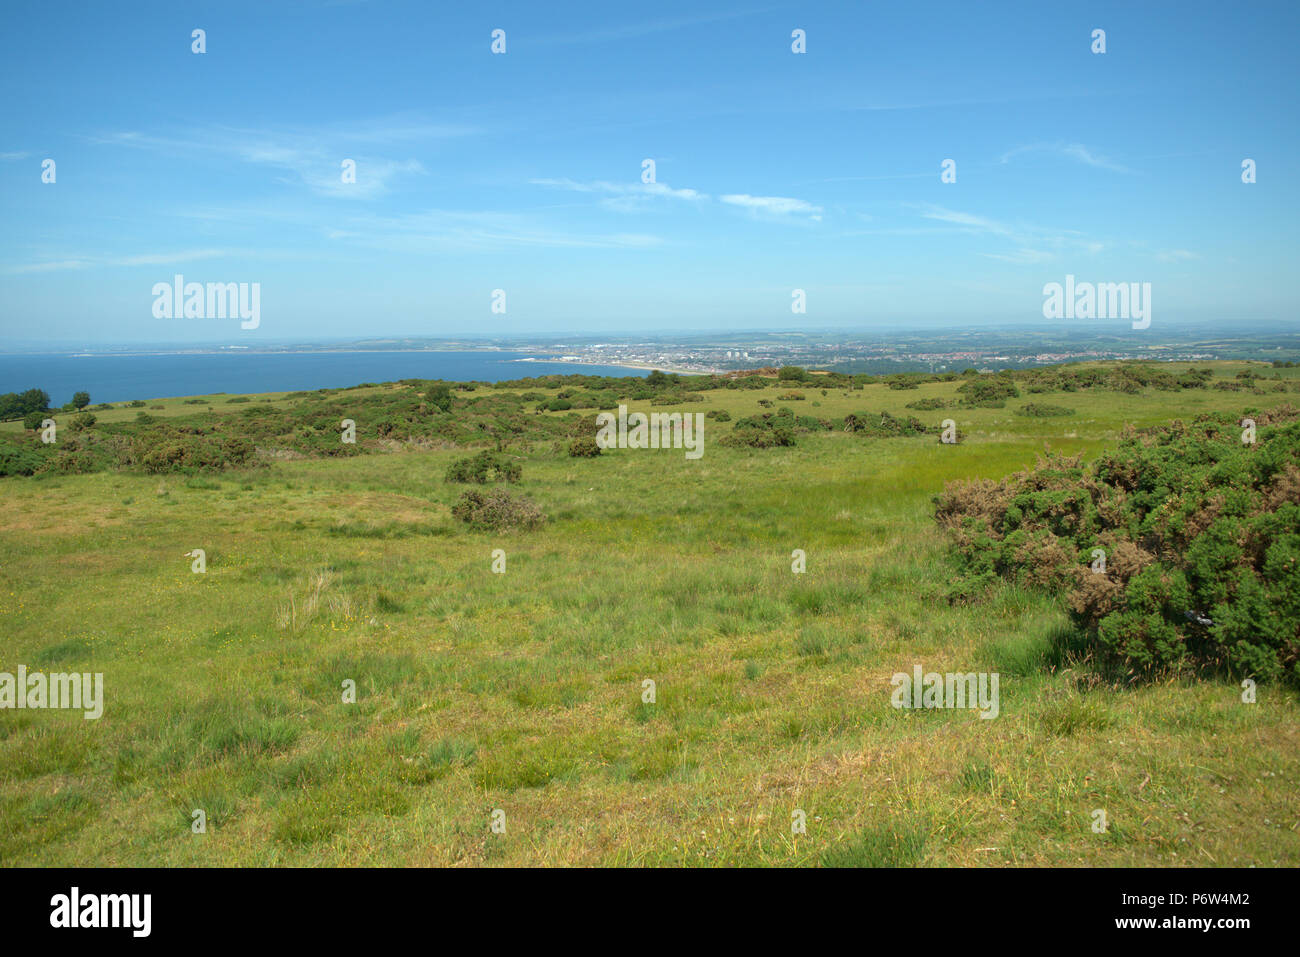 View from Carrick Hill, Ayr and Ayr Bay, Scotland - Stock Image